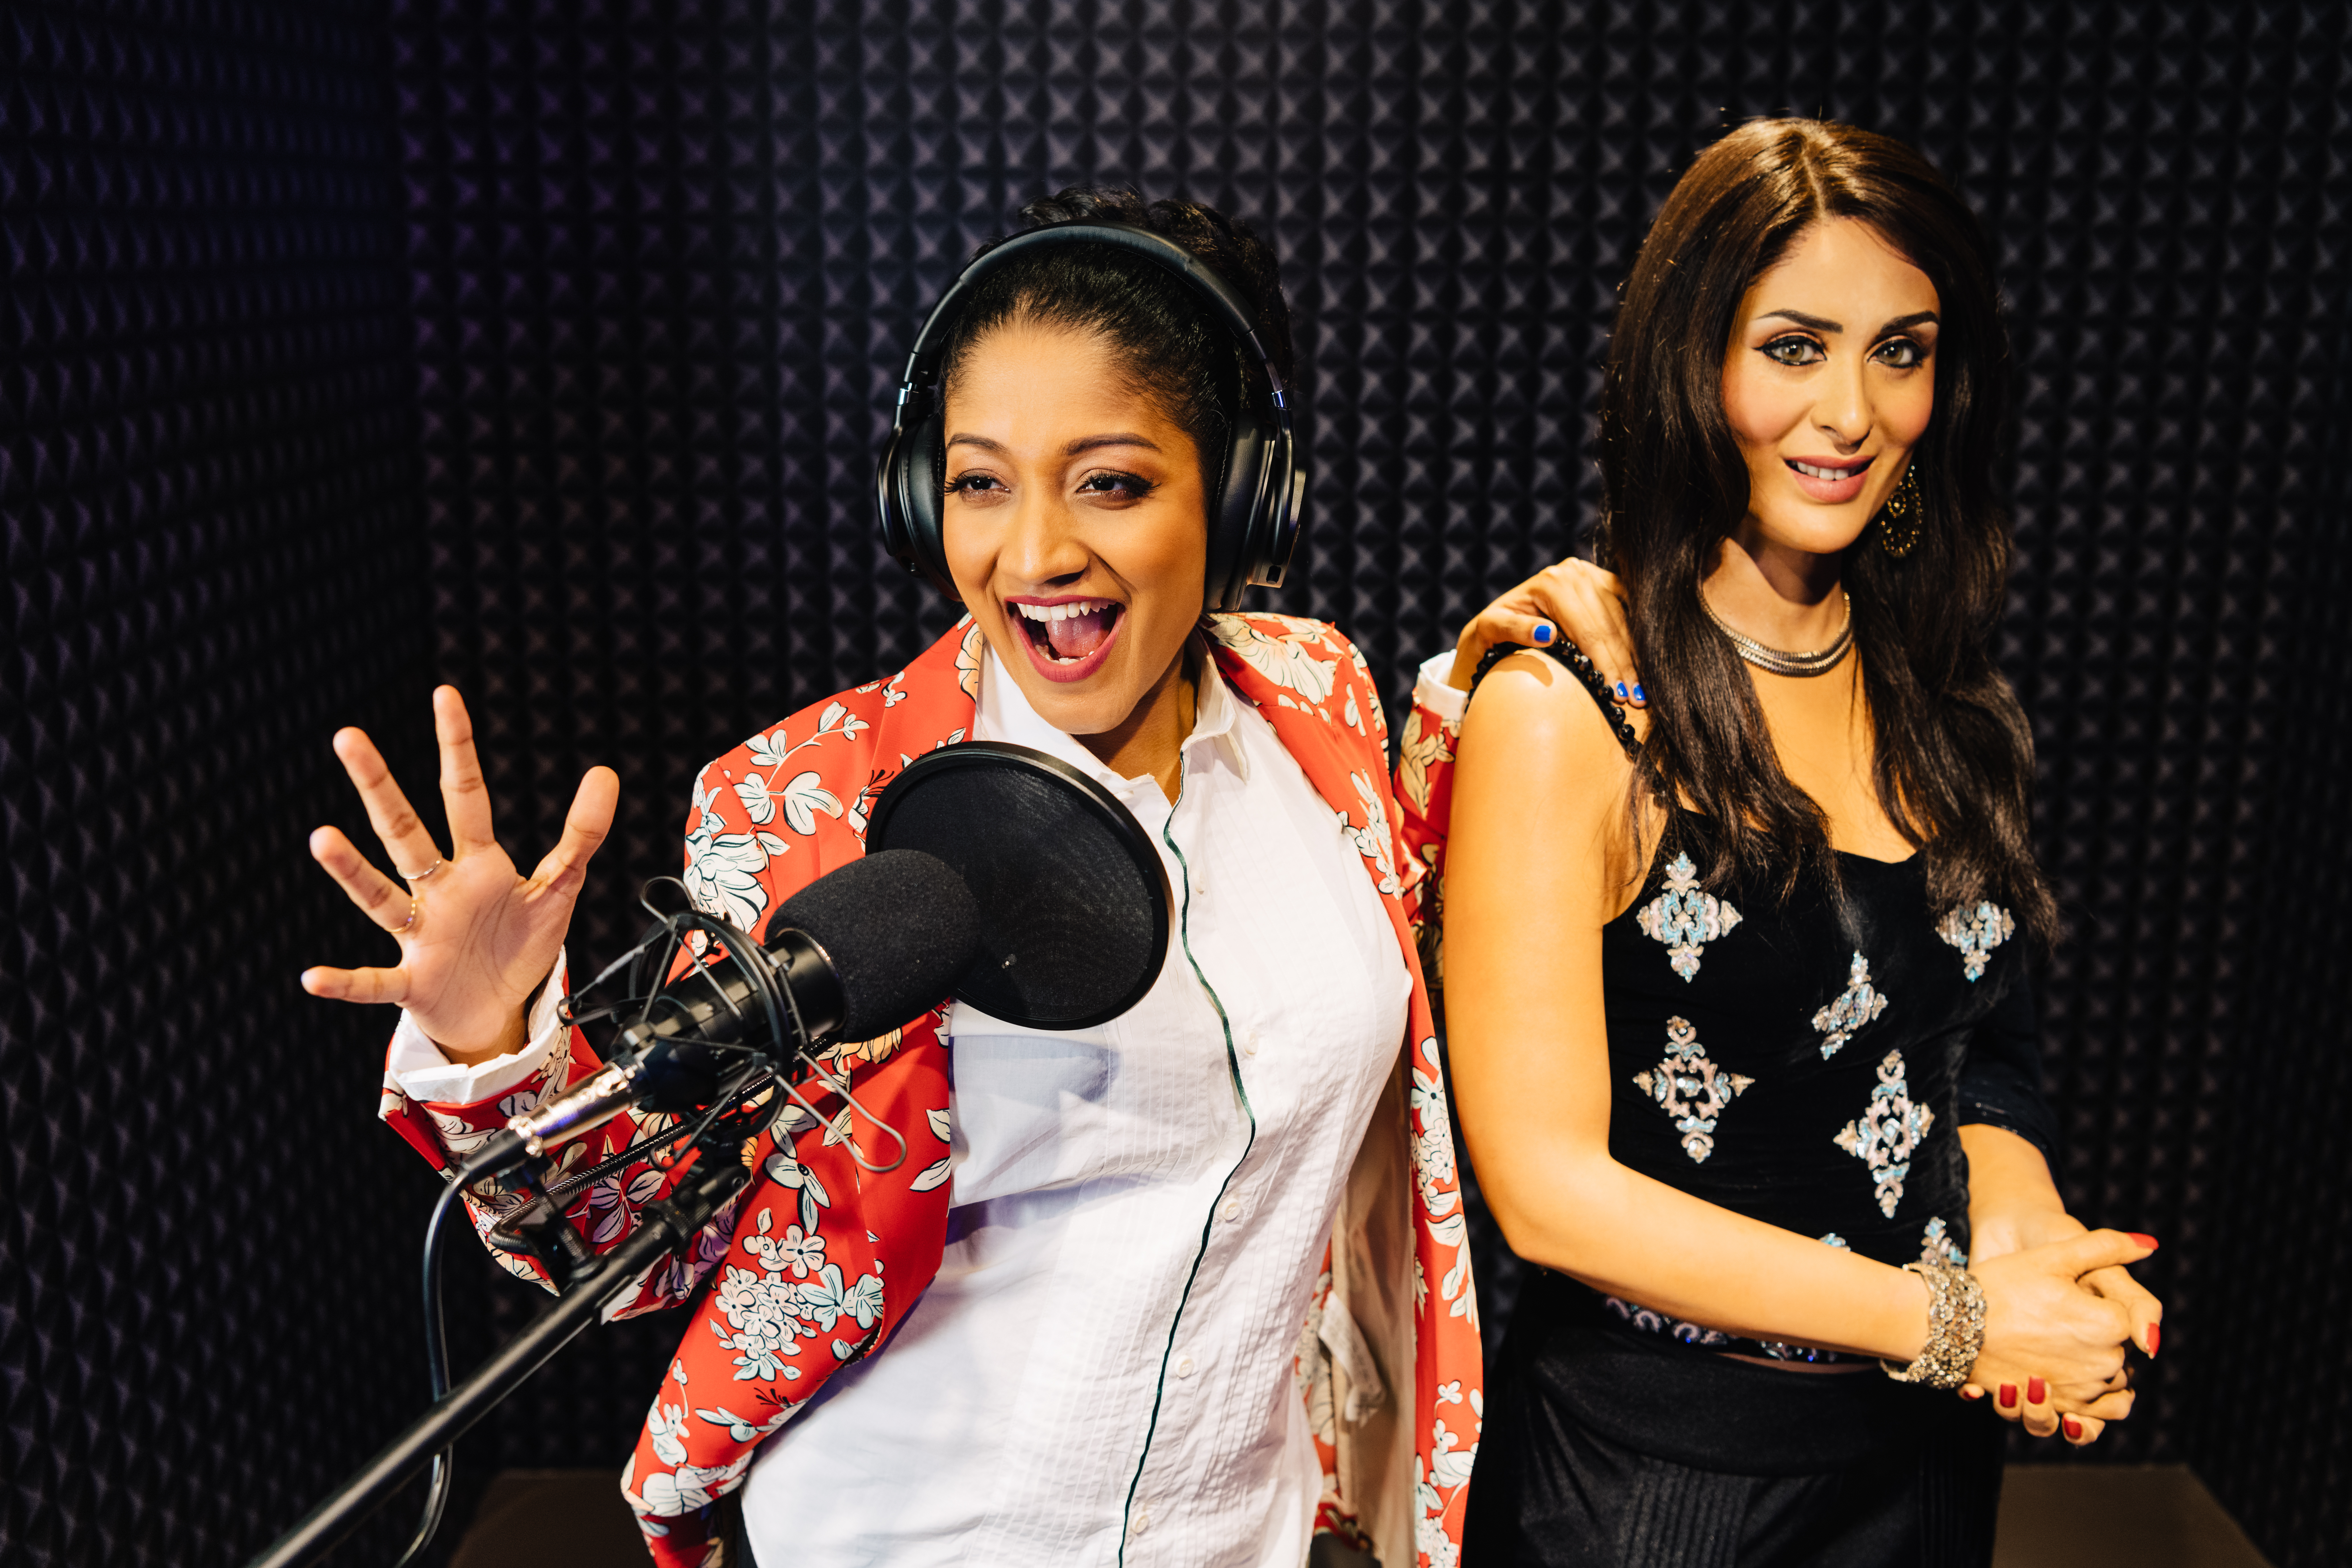 Rock the mic, make some noise and record a single or dub over a film track with Kareena Kapoor. Photo courtesy: Madame Tussauds